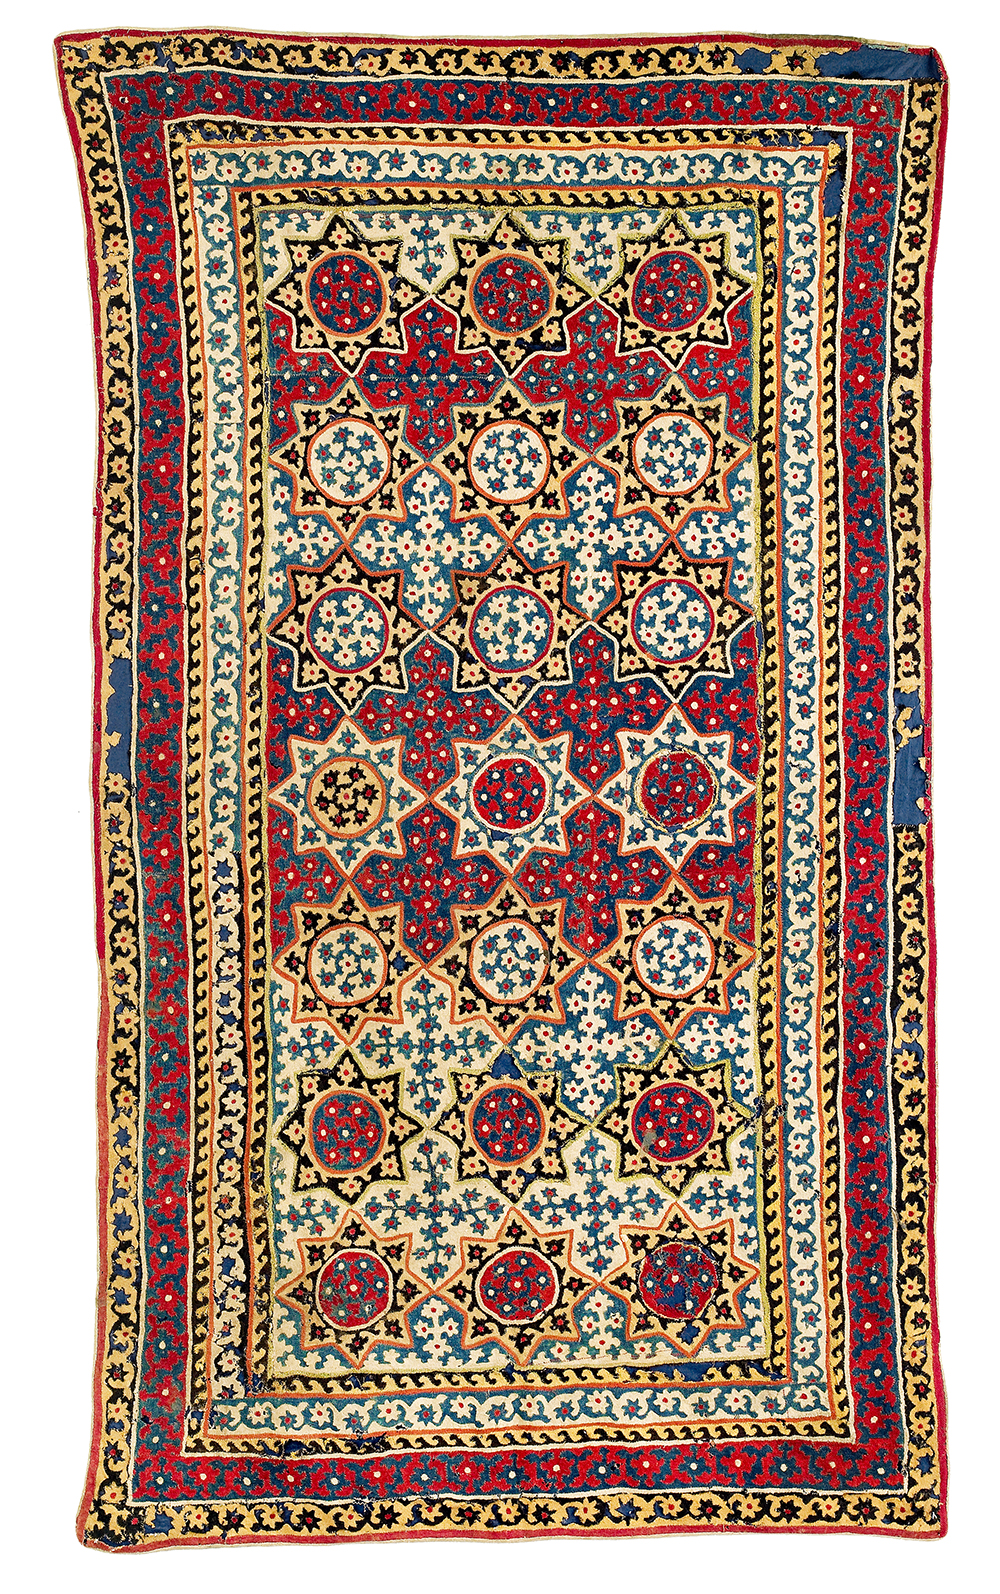 Lot 69, Felt Appliqué Cover, Central Asia, Uzbekistan, mid 18th century, 215 x 120 cm, estimate €1,500